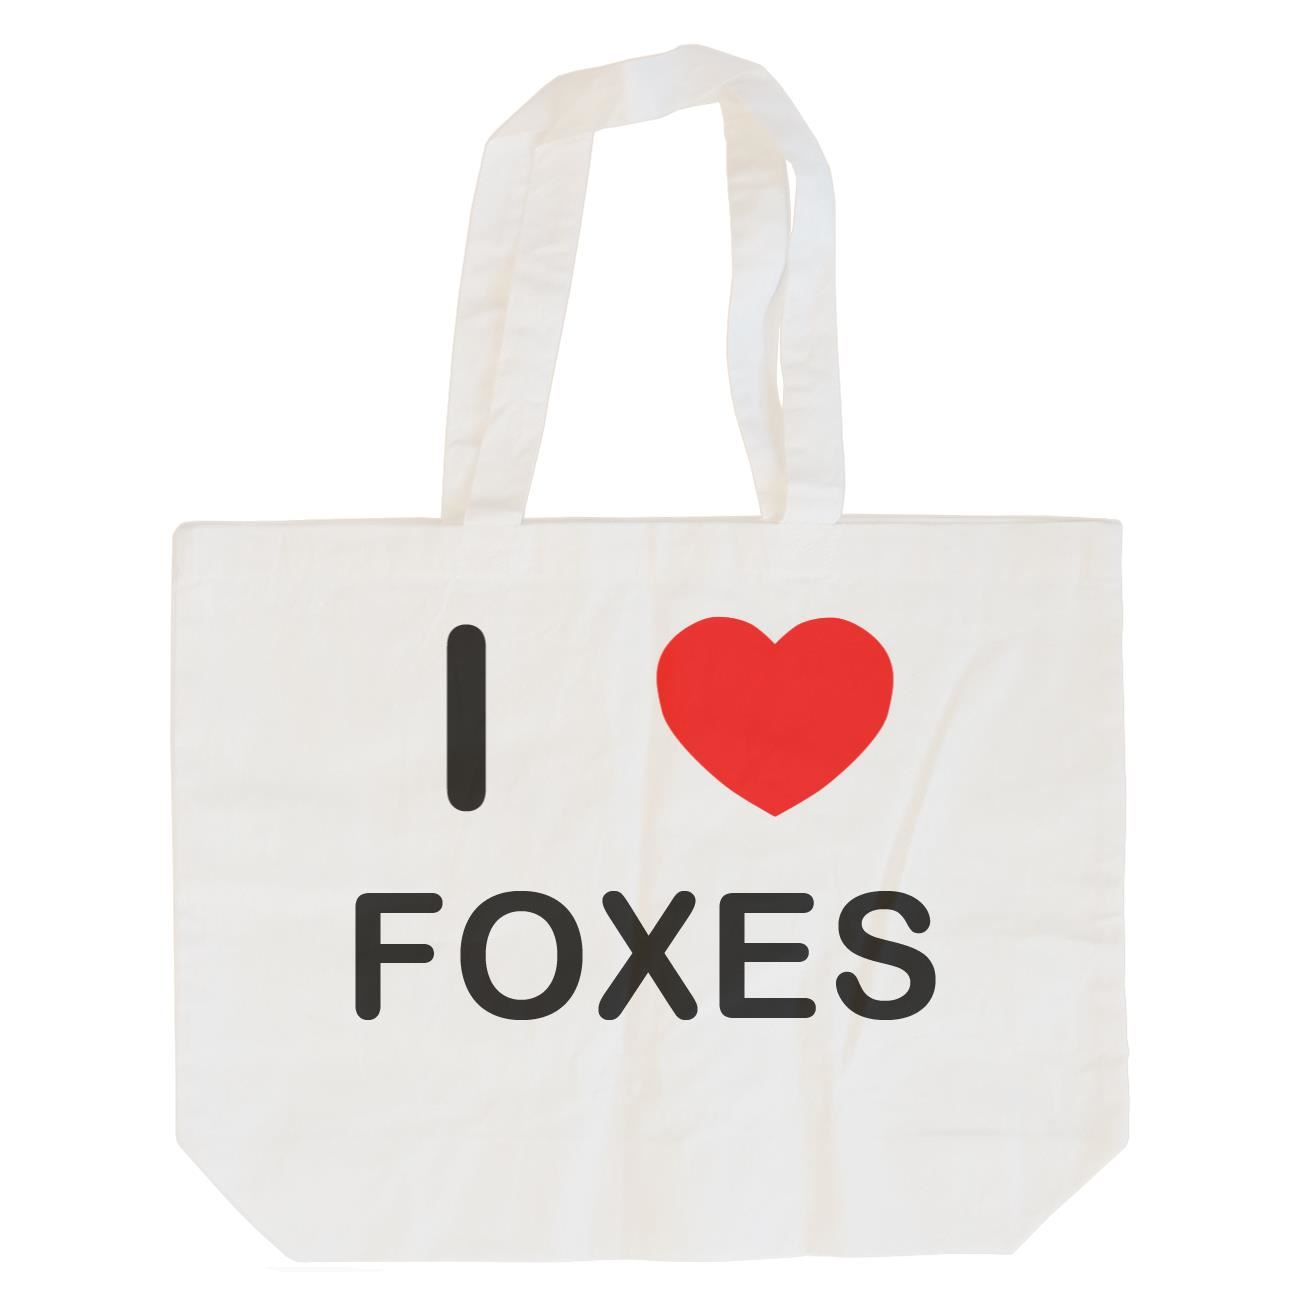 I Love Foxes - Cotton Bag | Size choice Tote, Shopper or Sling